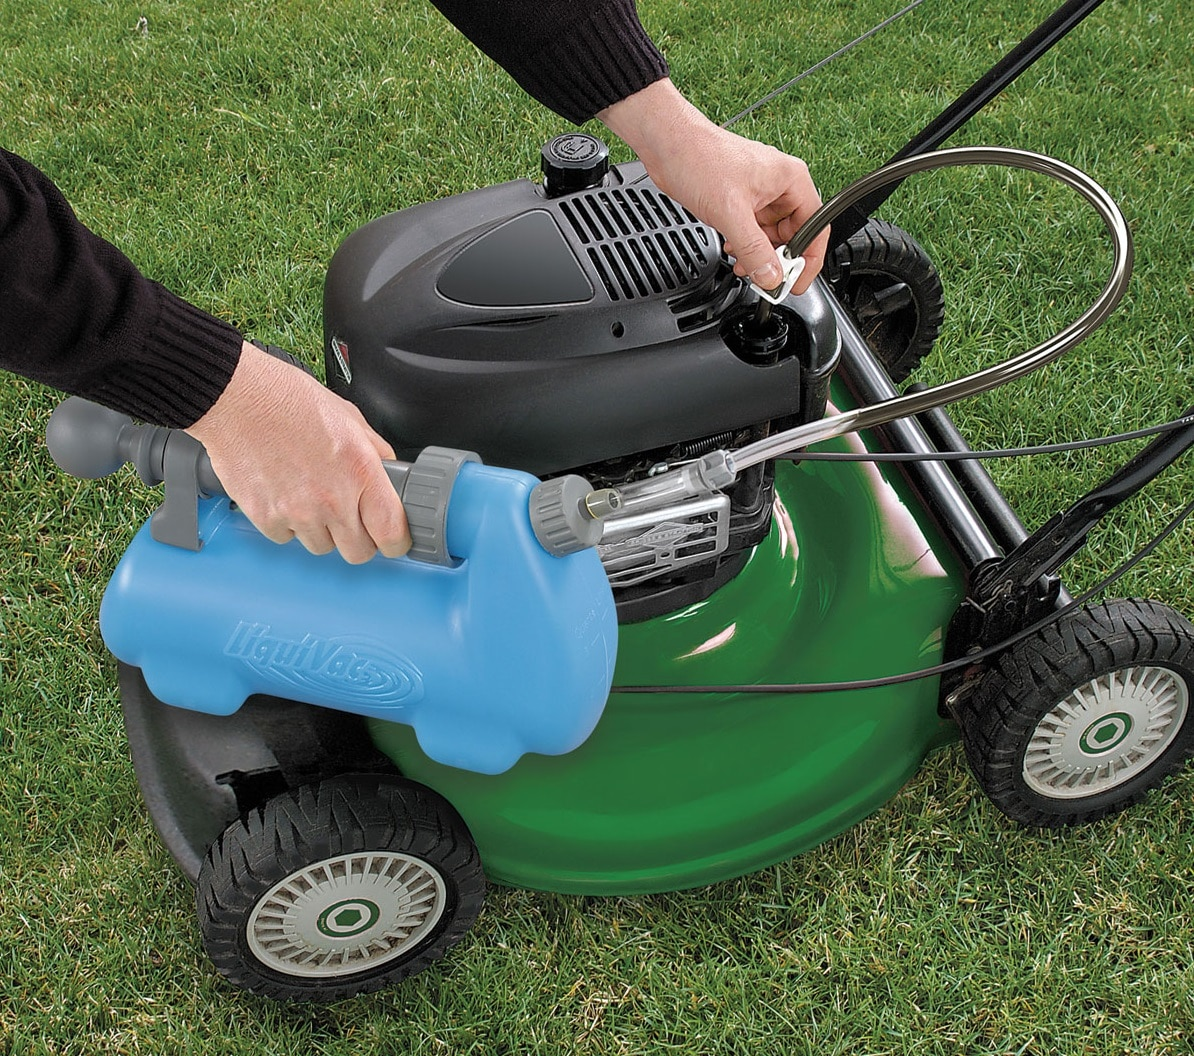 how to change oil of lawn mower